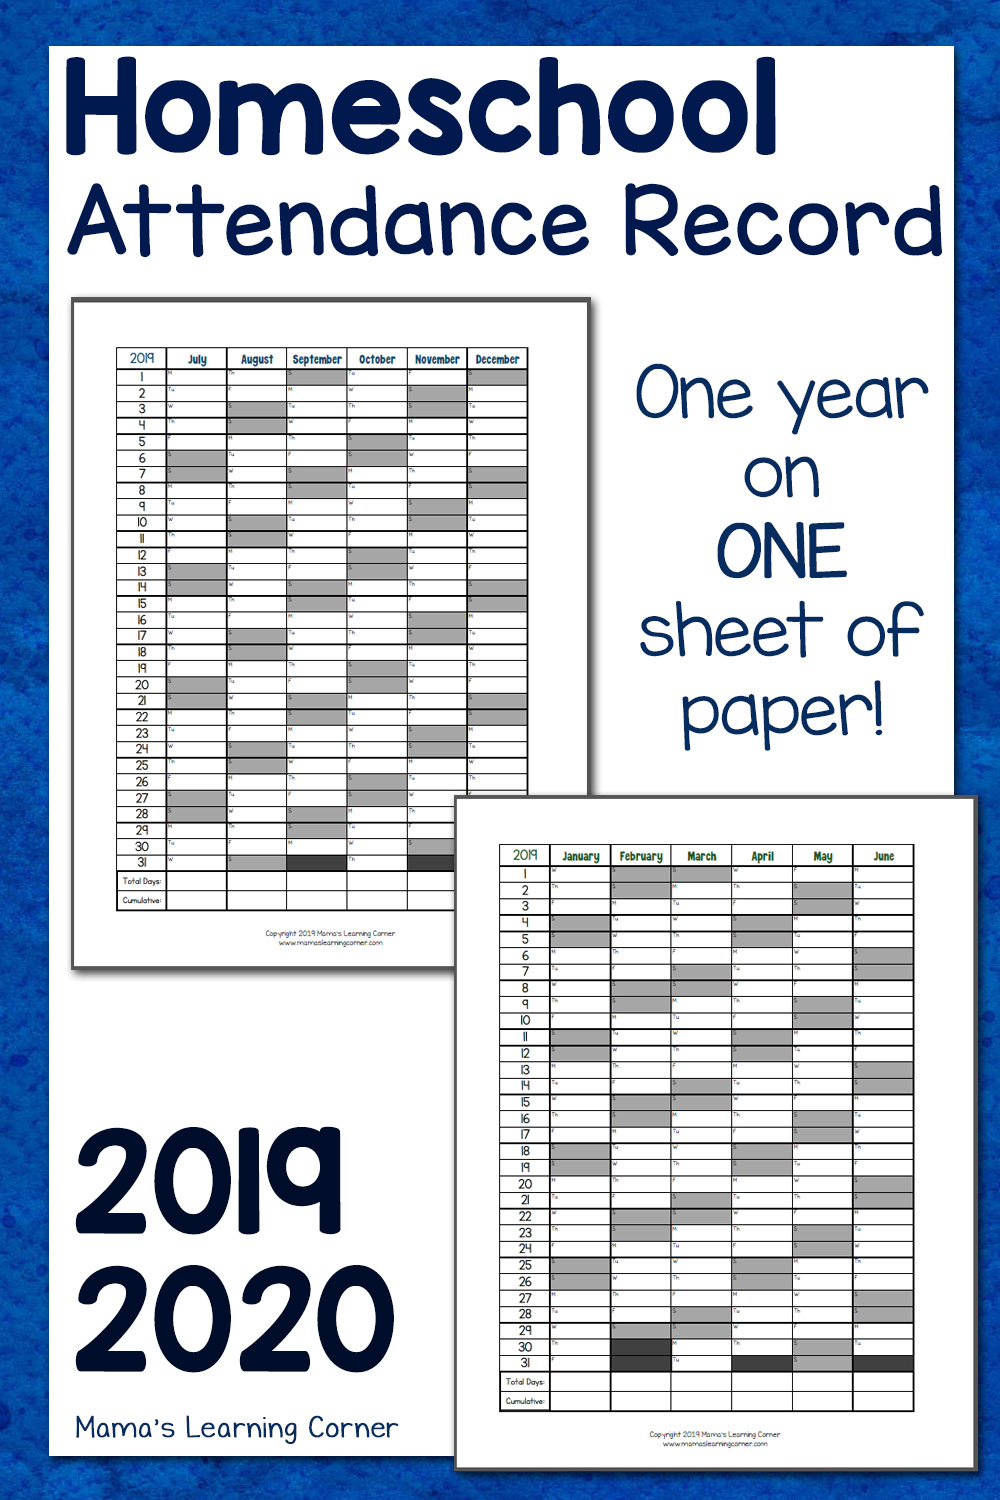 picture about Homeschool Calendar Printable named Uncomplicated Homeschool Attendance Historical past 2019-2020 - Mamas